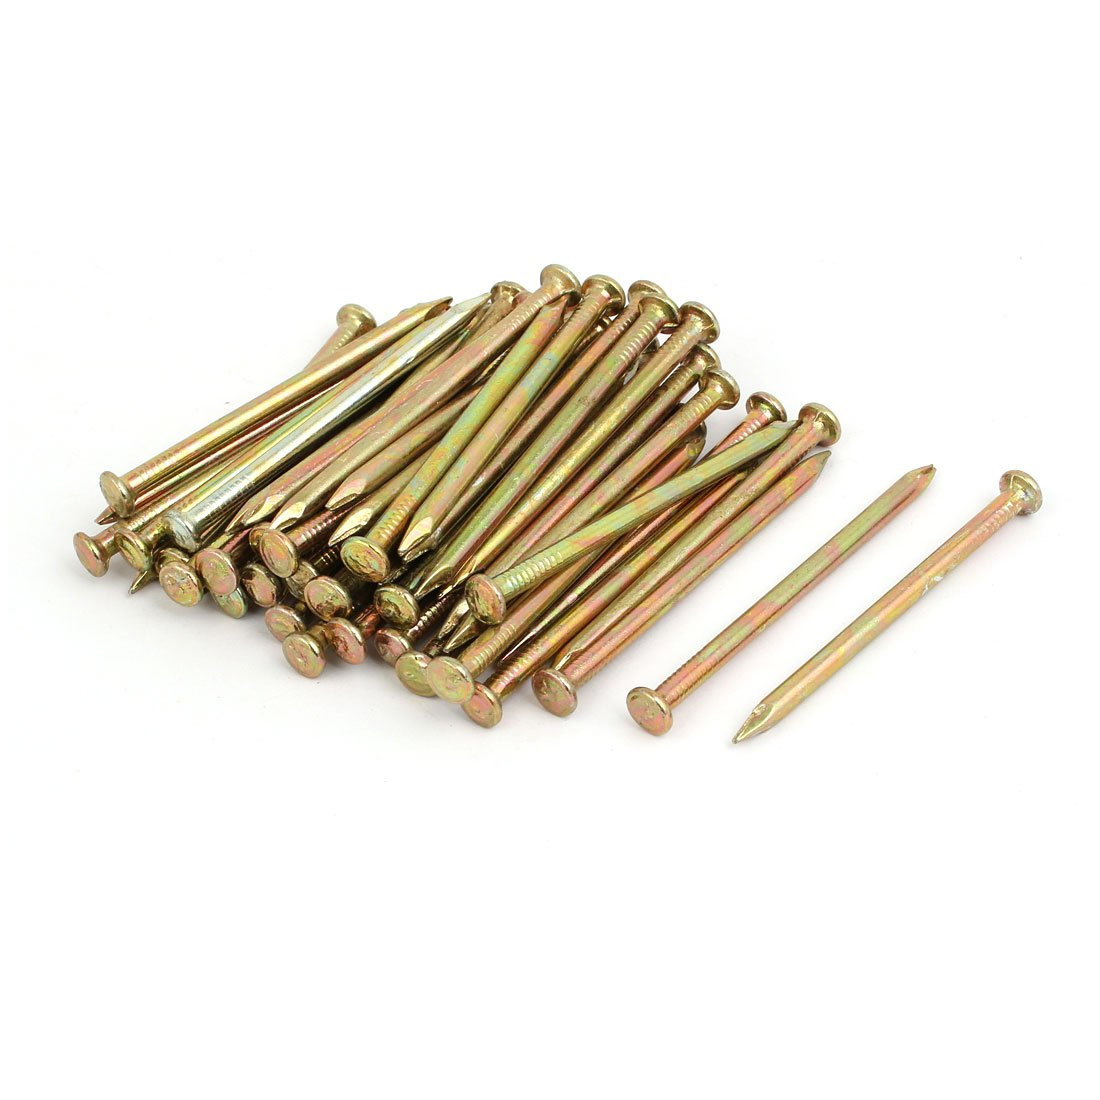 uxcell Fiber Concrete Cement Wall Steel Point Tip Wire Nails 70mm Length Bronze Tone 50PCS